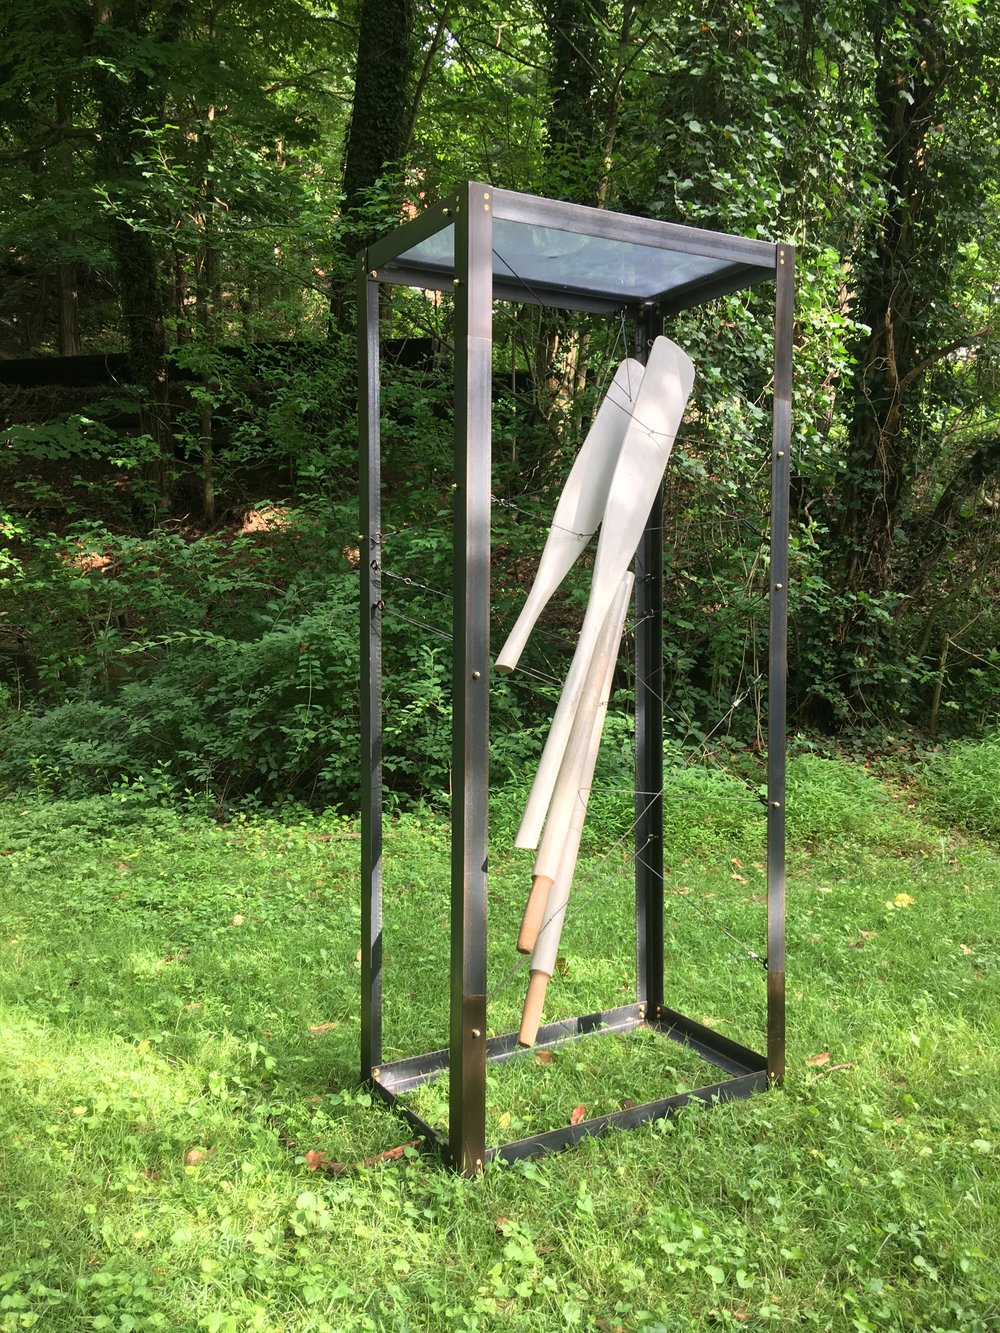 Unrecovered, unreturned   2018, Steel, brass, aluminum, polycarbonate, steel cable, sprayable rubber, wooden oars